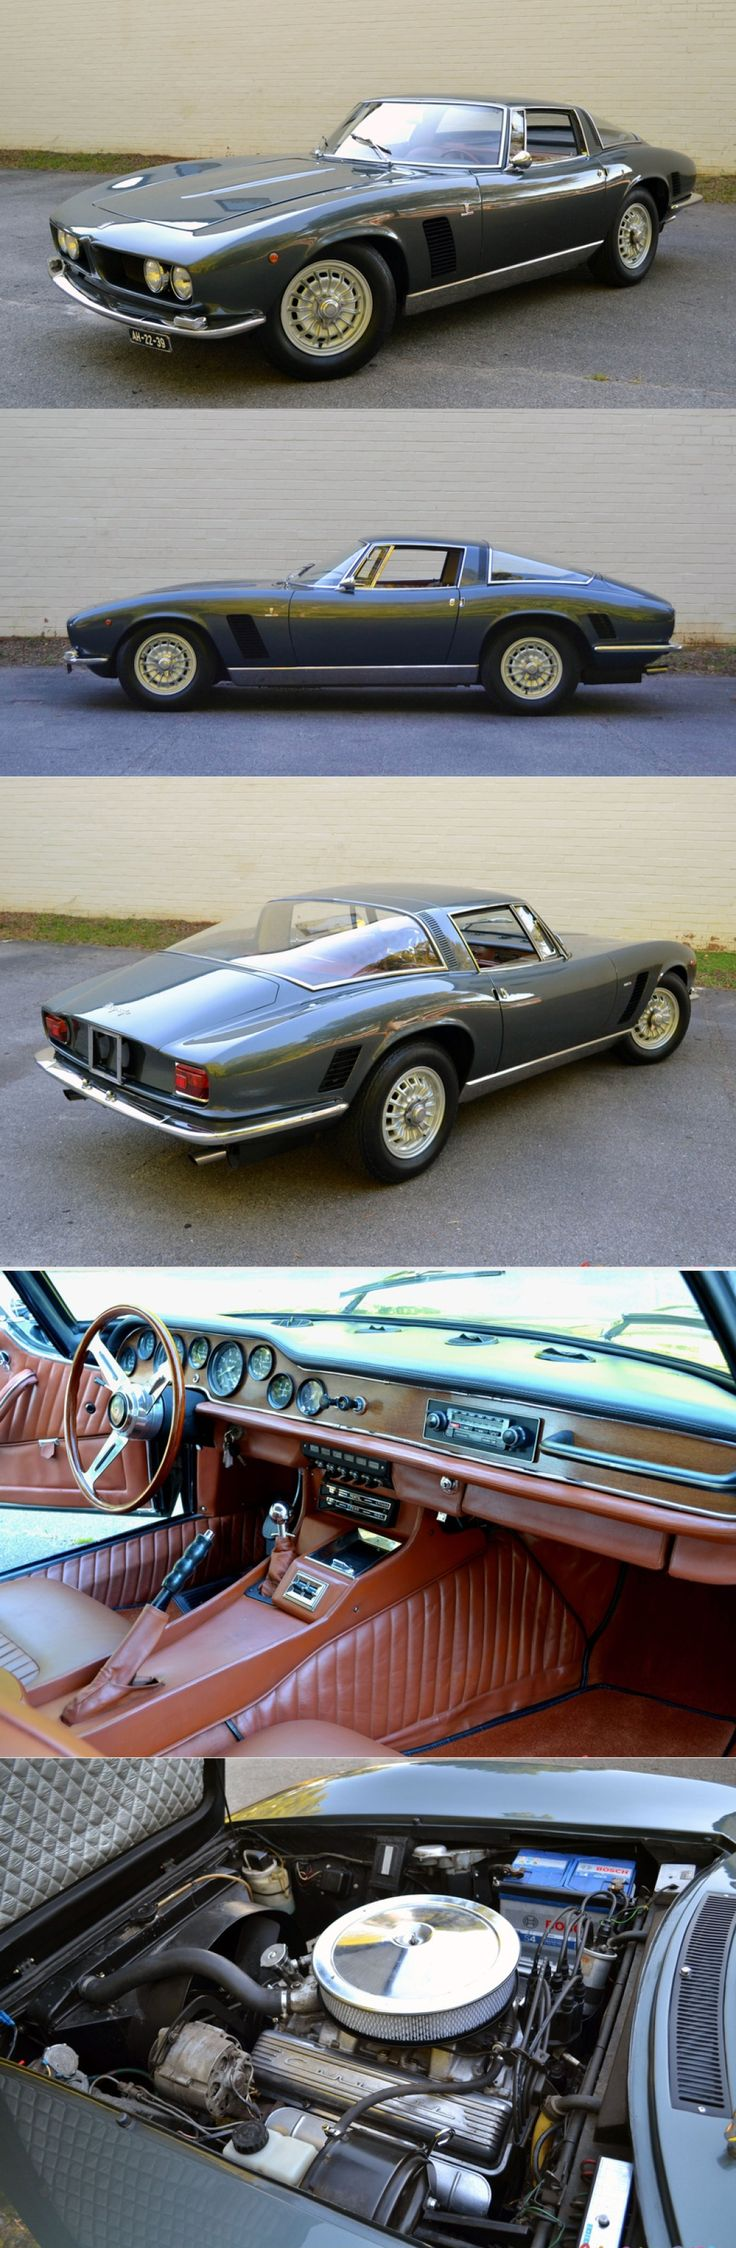 1966 Iso Grifo 350 GL / Italy / grey / 17-452 – Classic Car News Pics And Videos